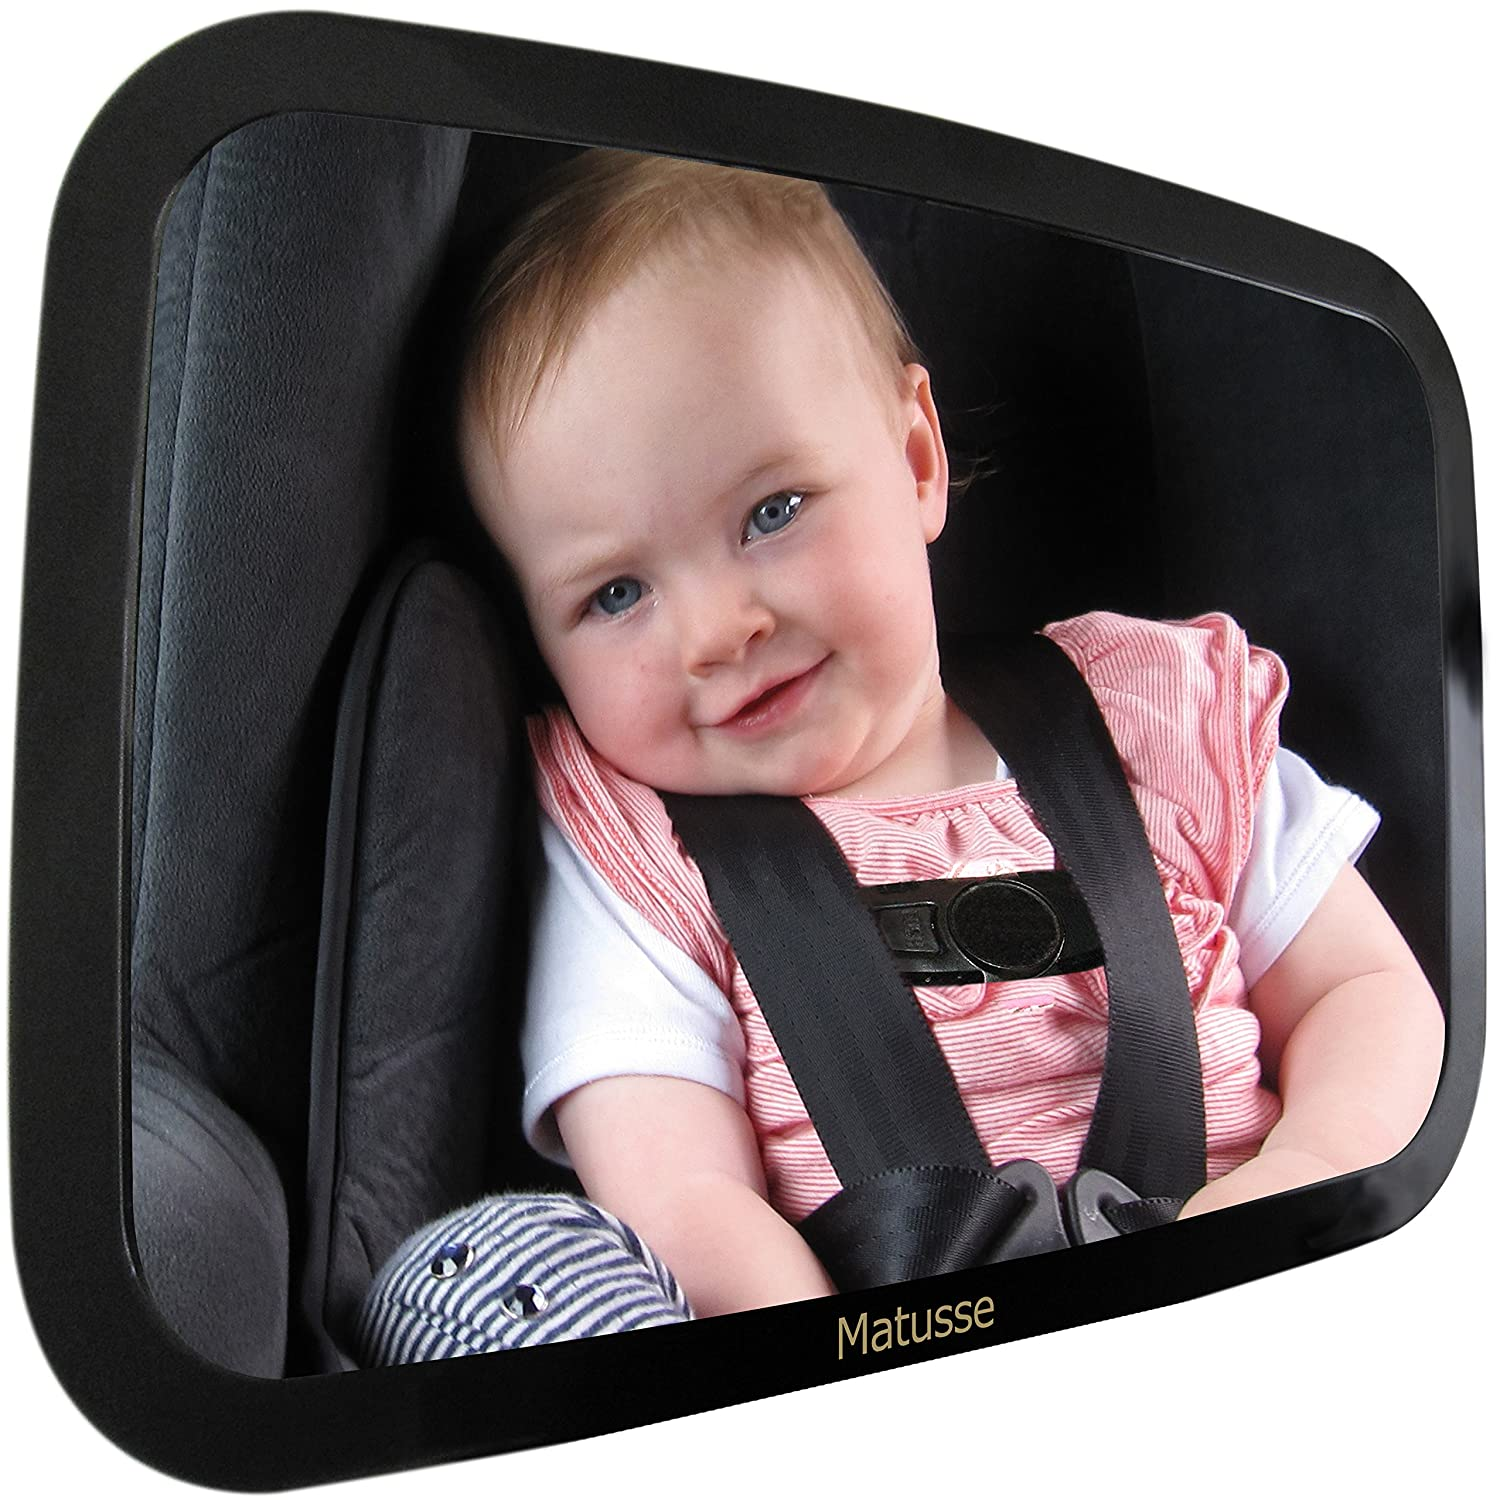 Baby Car Mirror For Rear Facing Baby Car Seat Largest Most Stable Mirror With Crystal Clear View